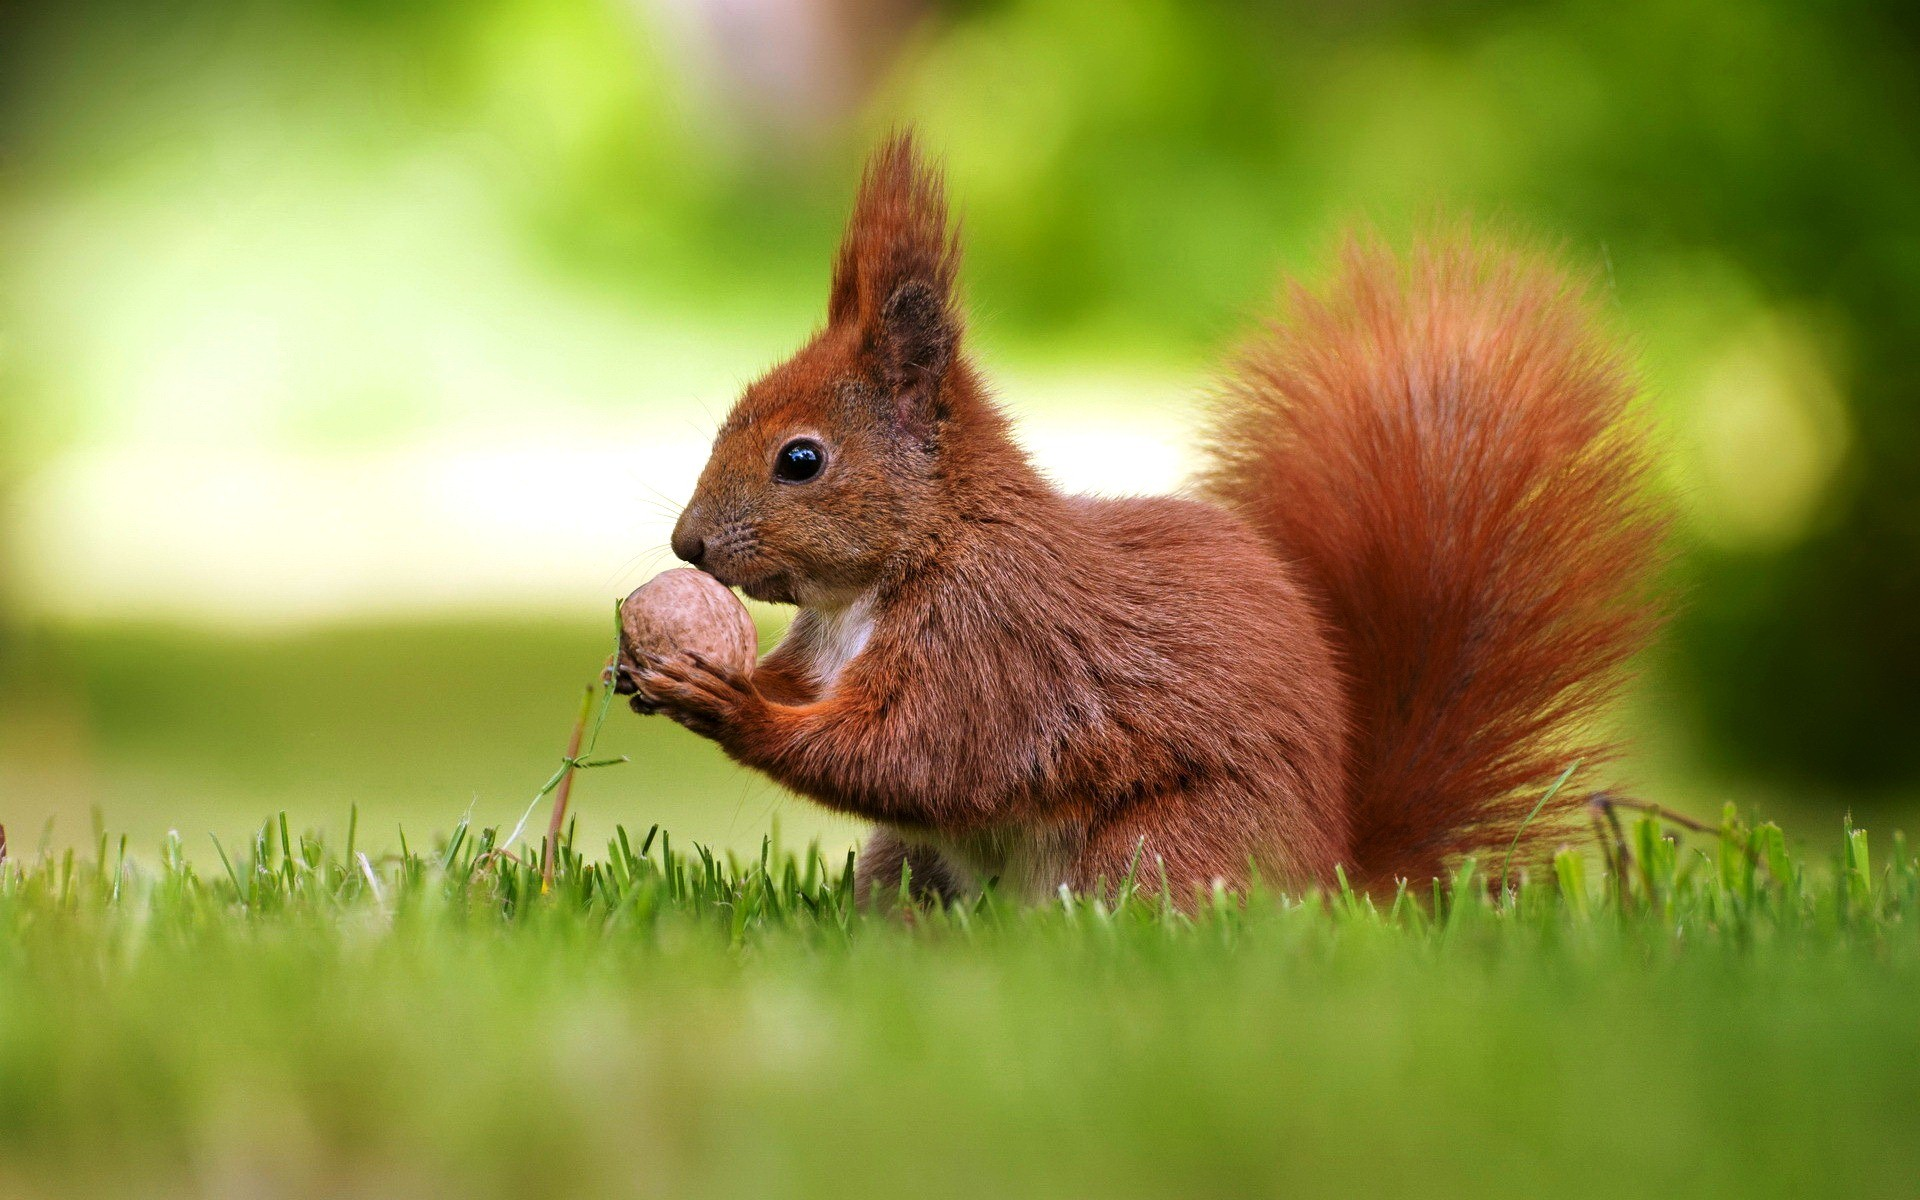 Cute Squirrel Hd Wallpaper Images Photos Picture